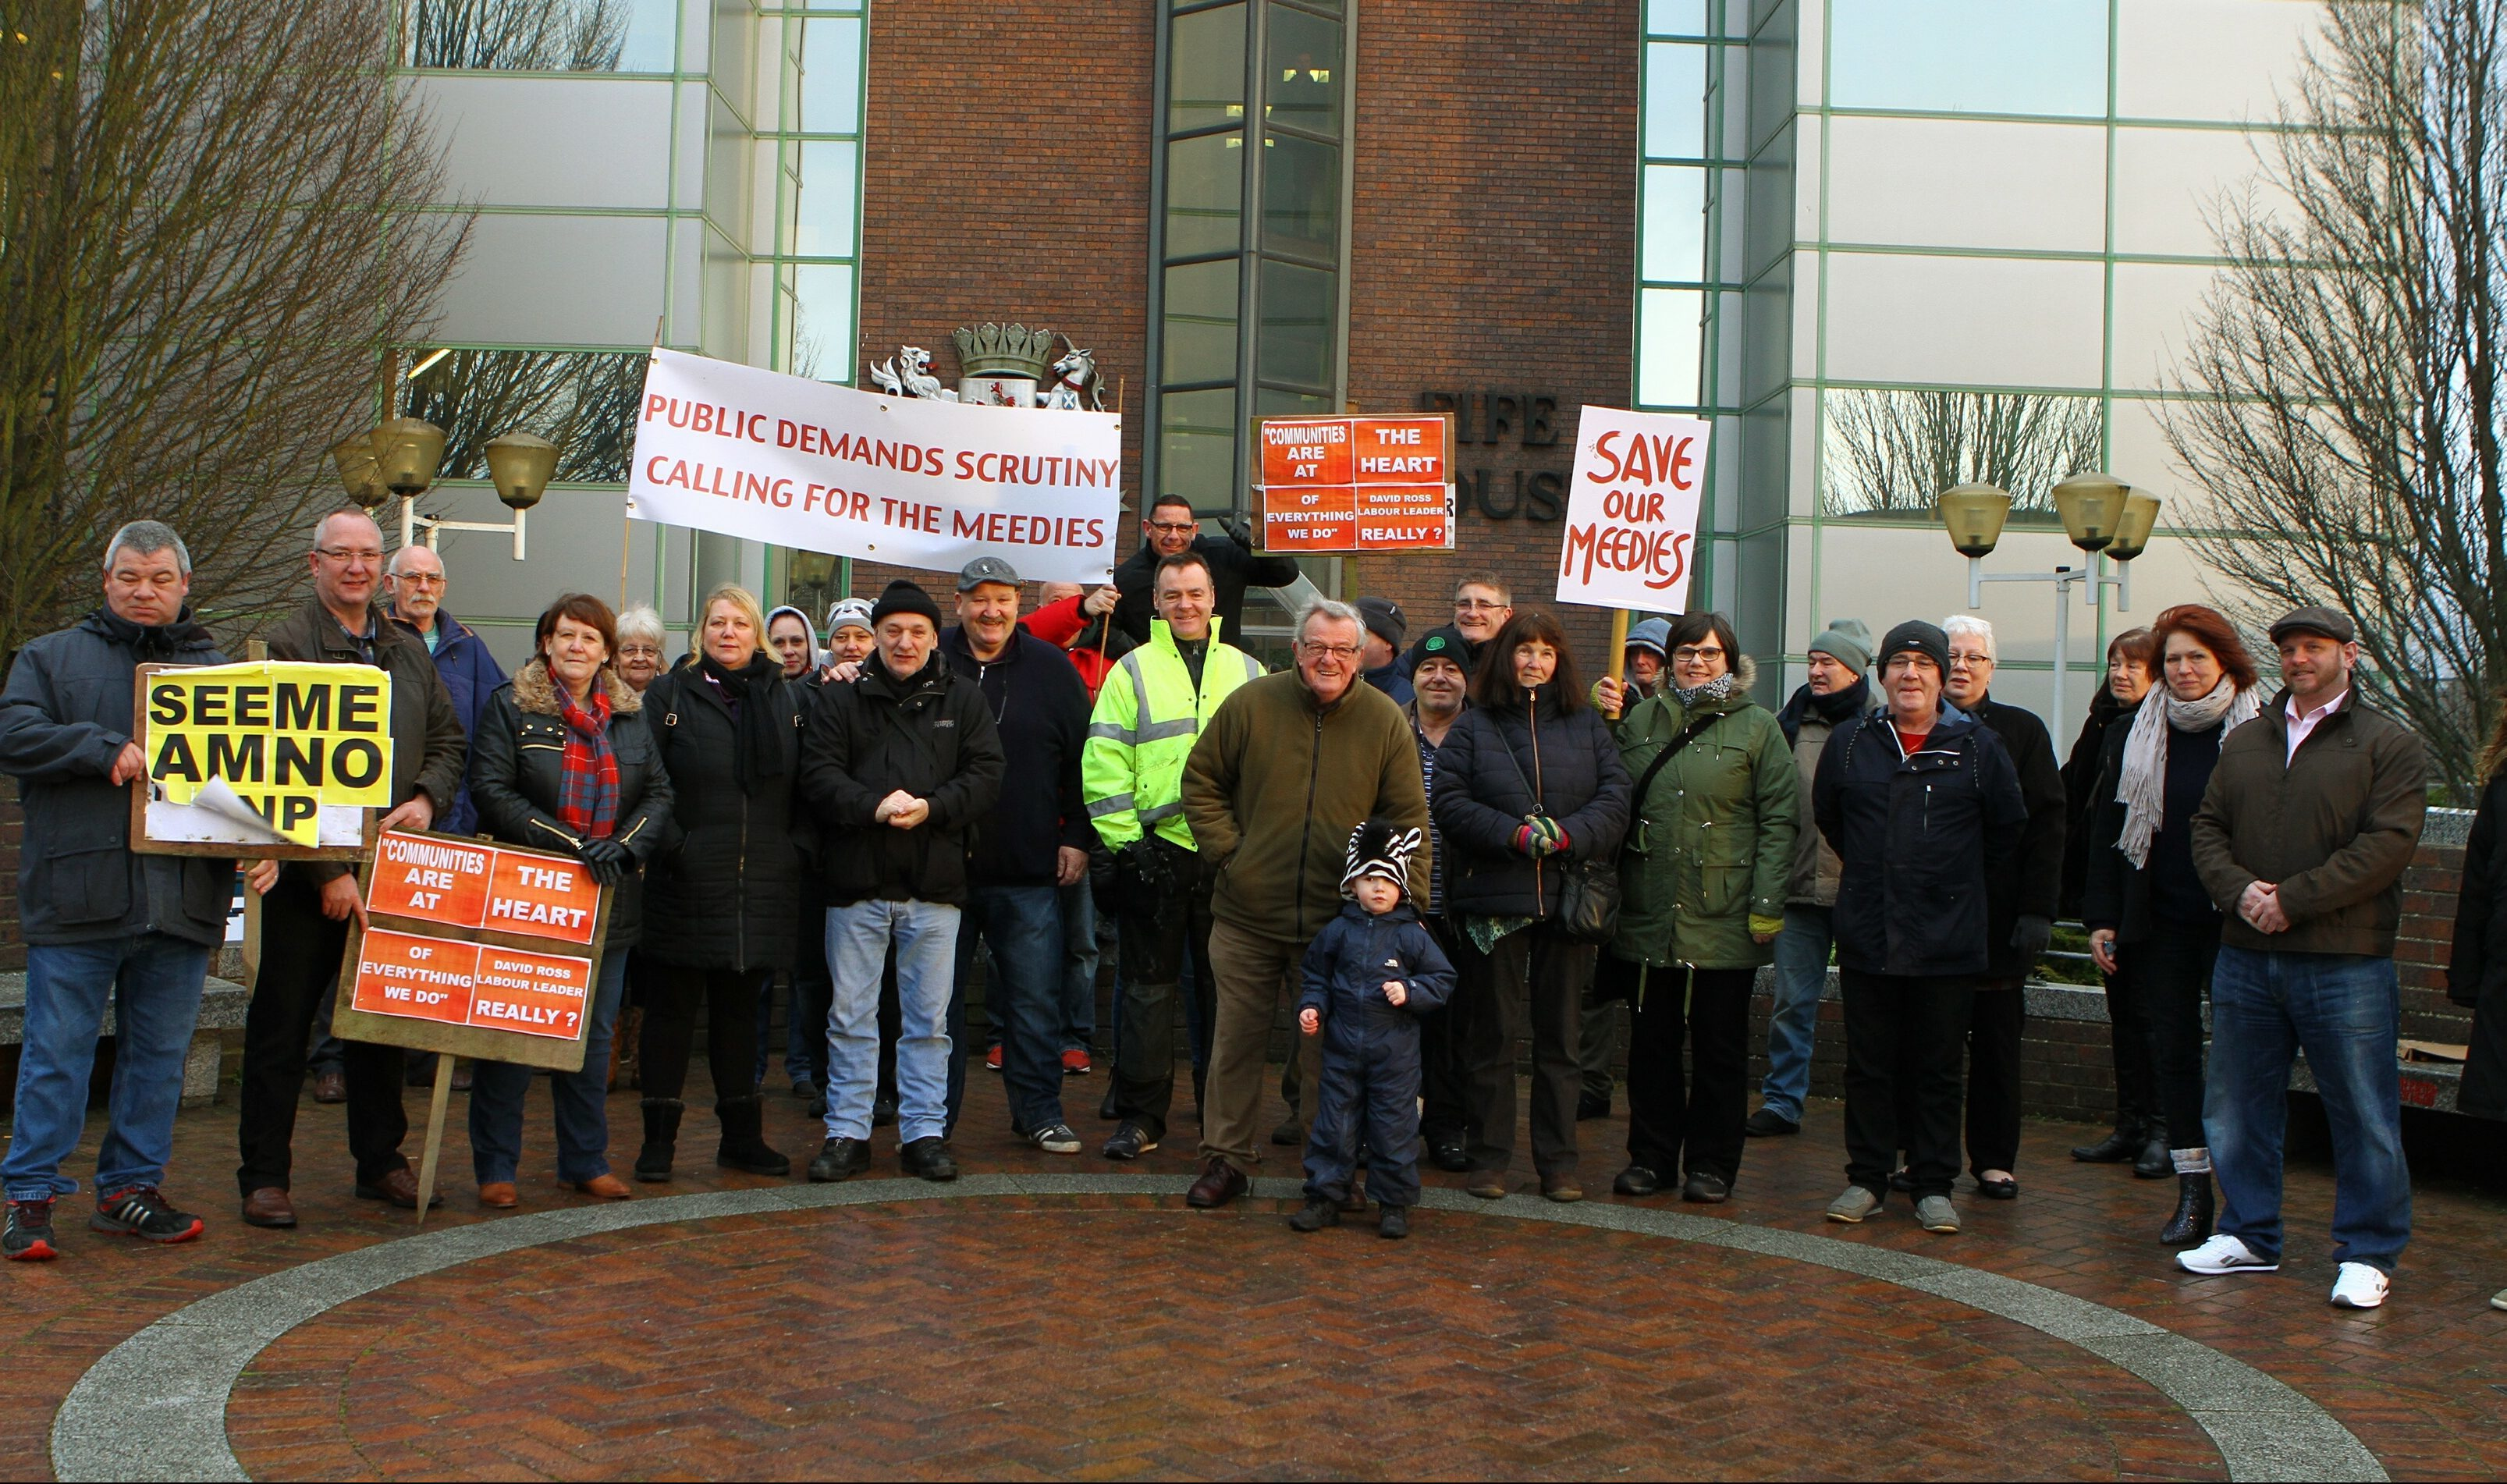 The group of Lochore Meadows protestors outside Fife House in Glenrothes, ahead of the Fife Council executive committee meeting.